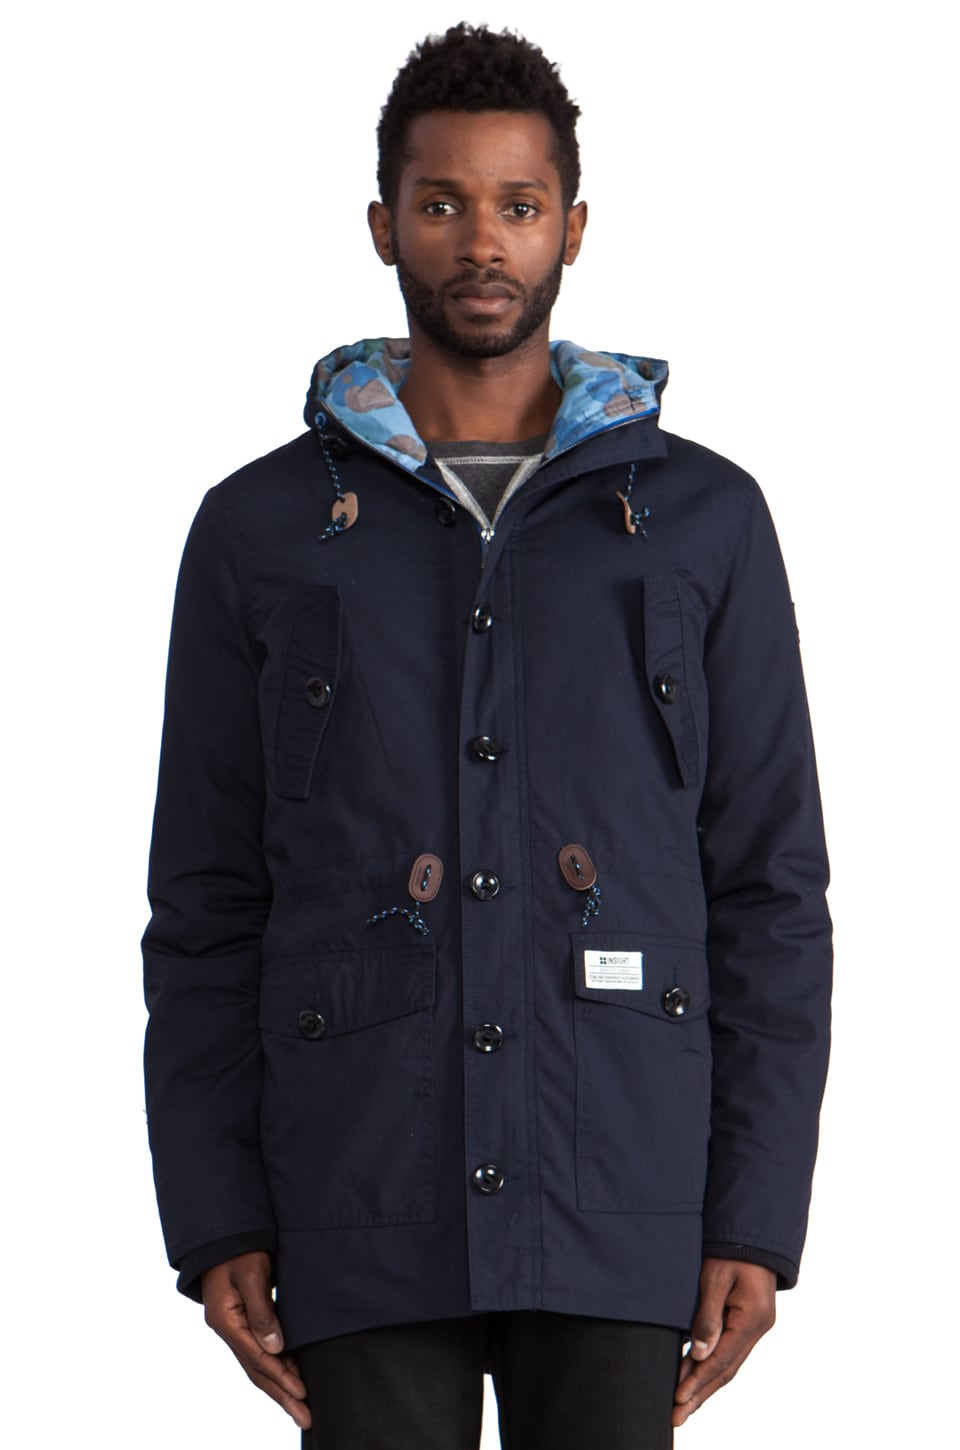 Insight Rain Maker Jacket in Black Out Blue